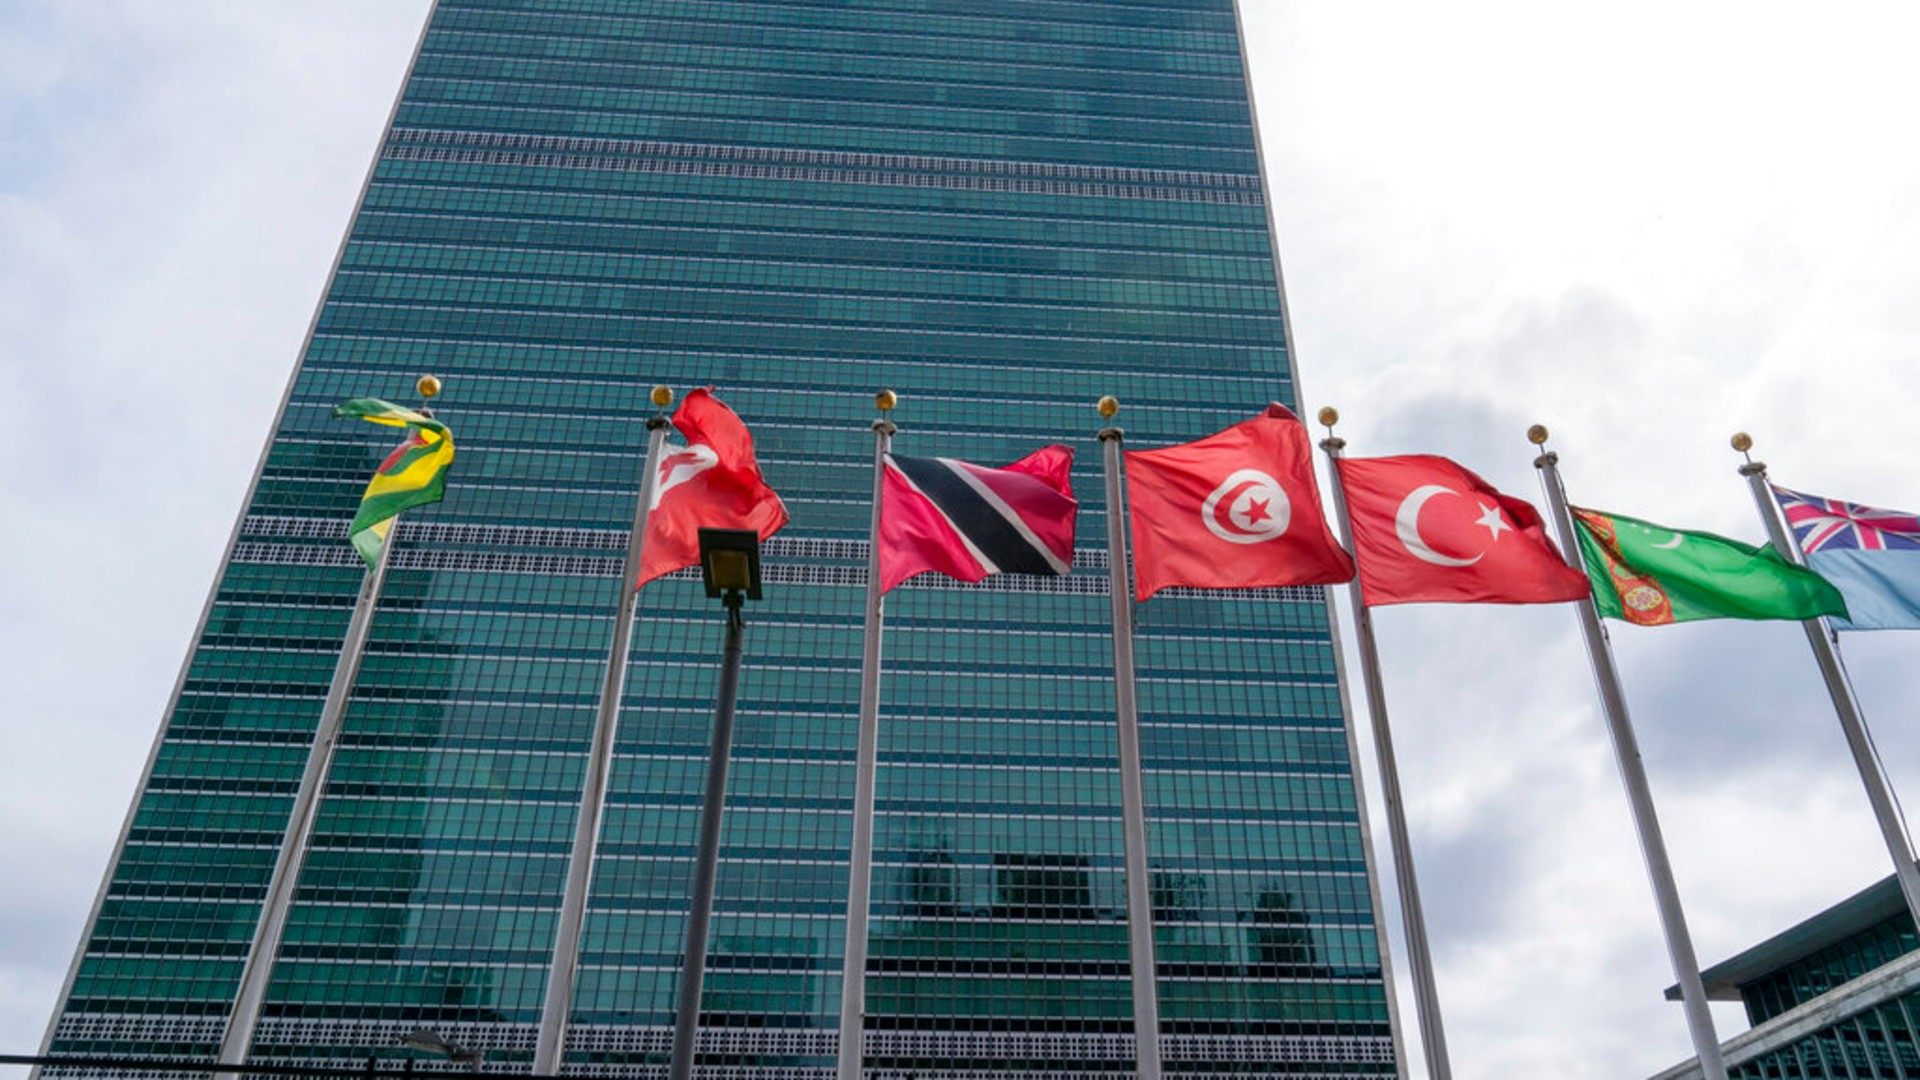 Member state flags fly outside the United Nations headquarters, Friday, Sept. 18, 2020, in New York. (AP Photo/Mary Altaffer)